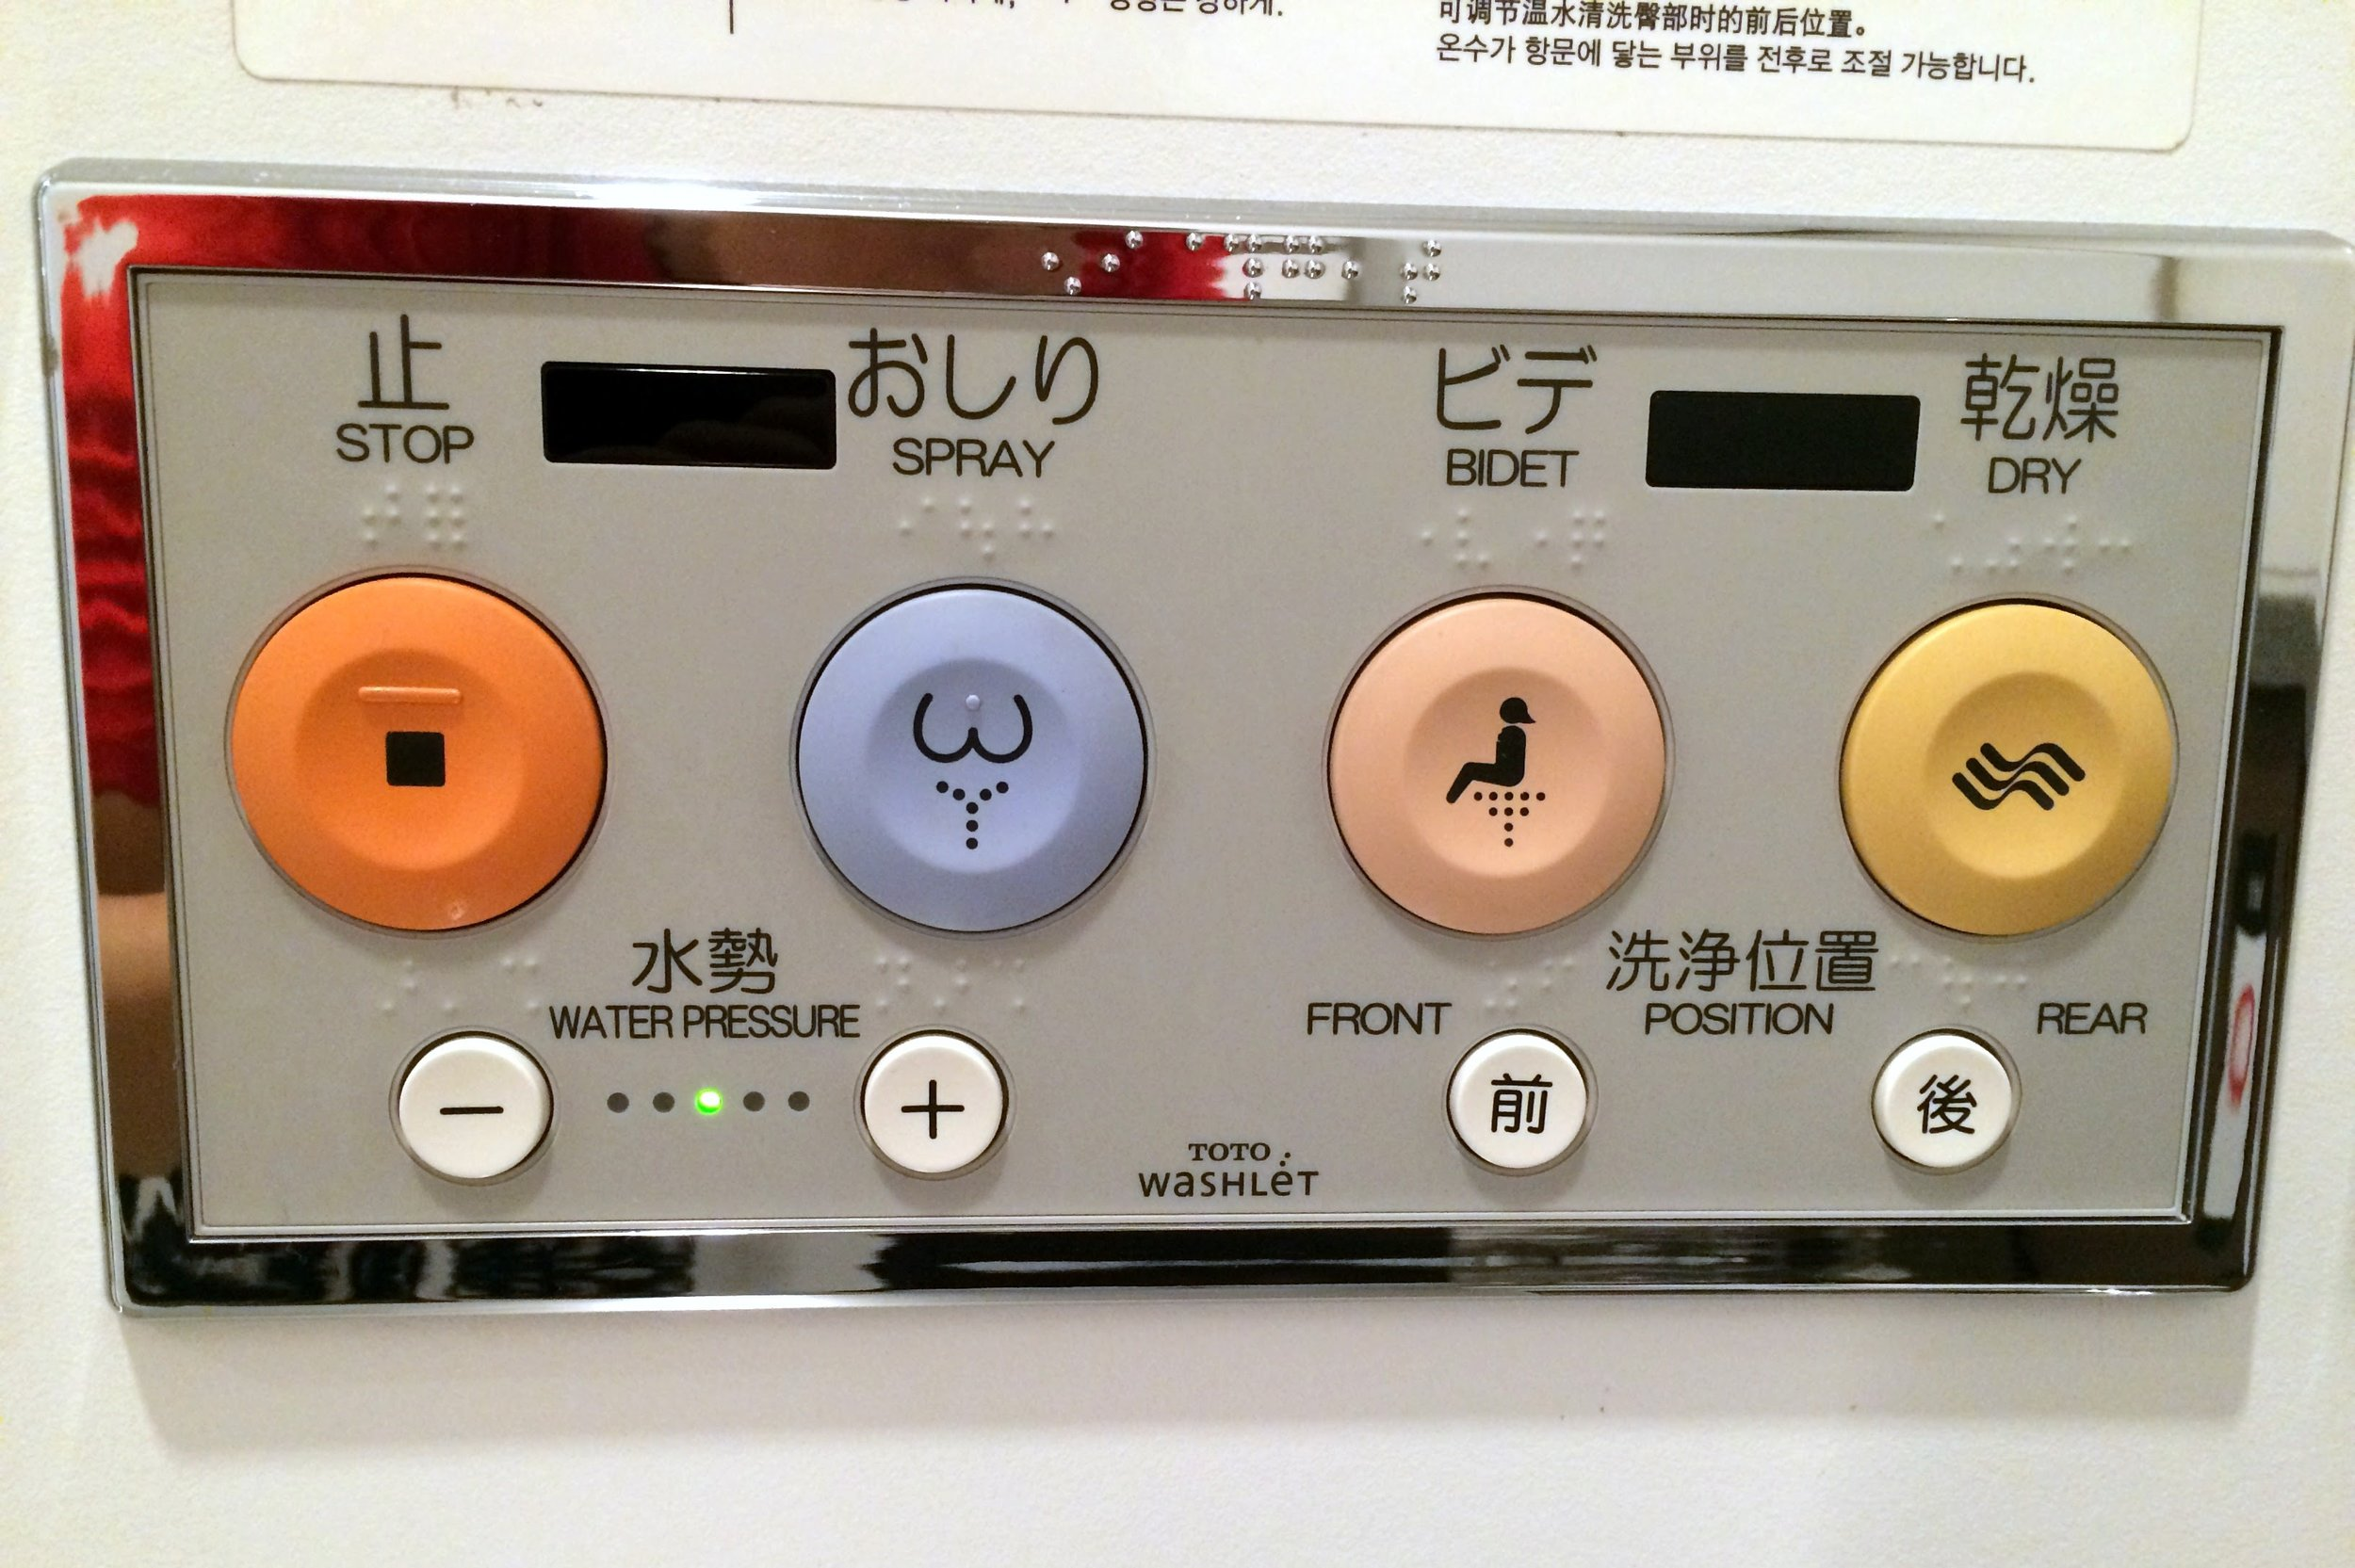 Toilet buttons in Tokyo, Japan